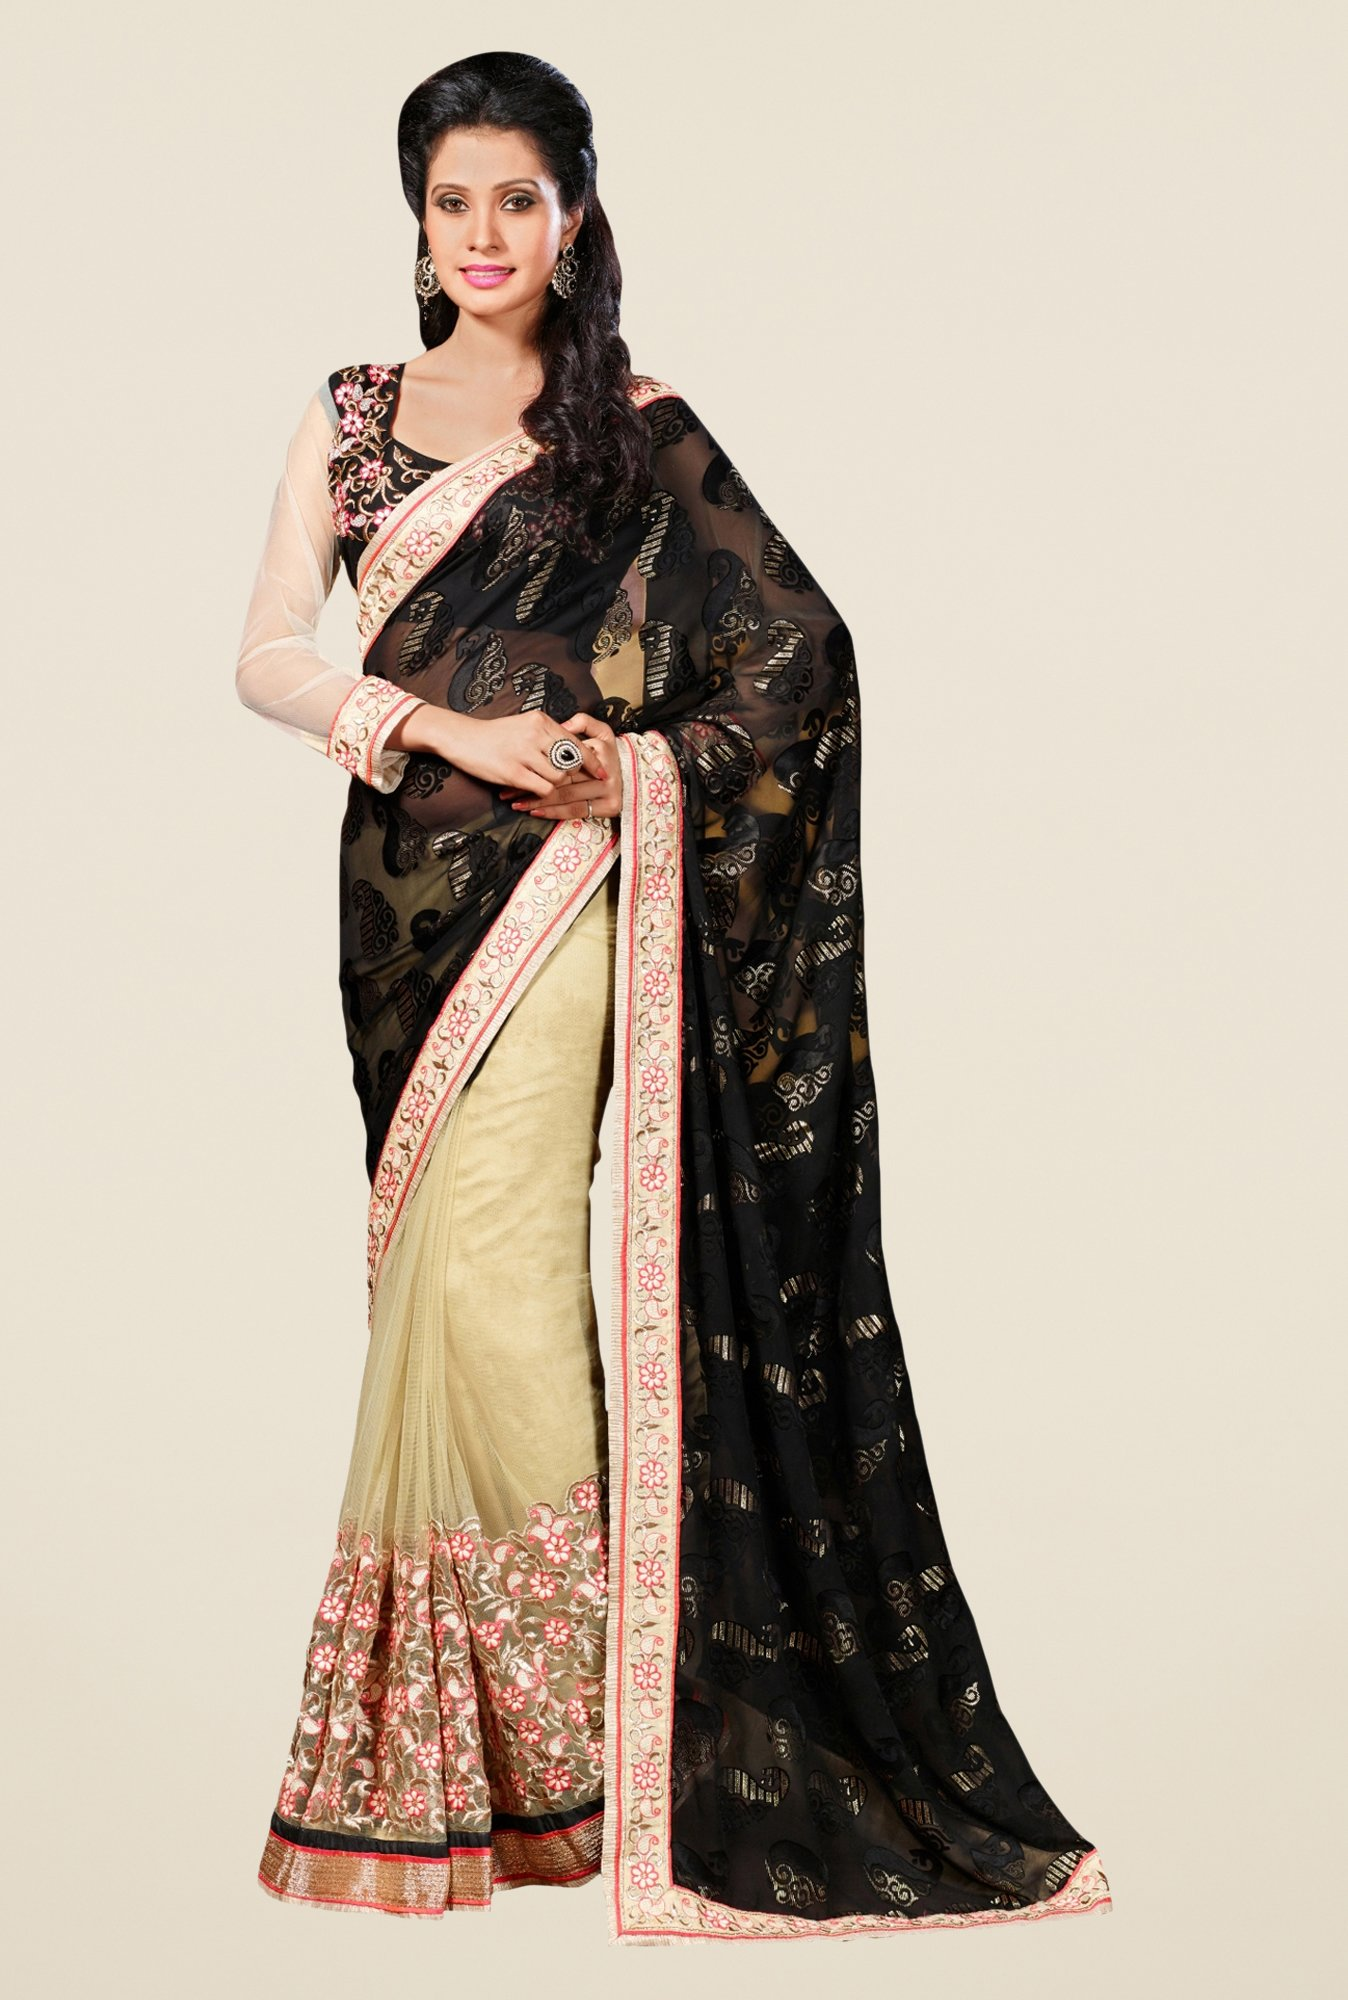 Triveni Beige Embroidered Brasso Net Saree